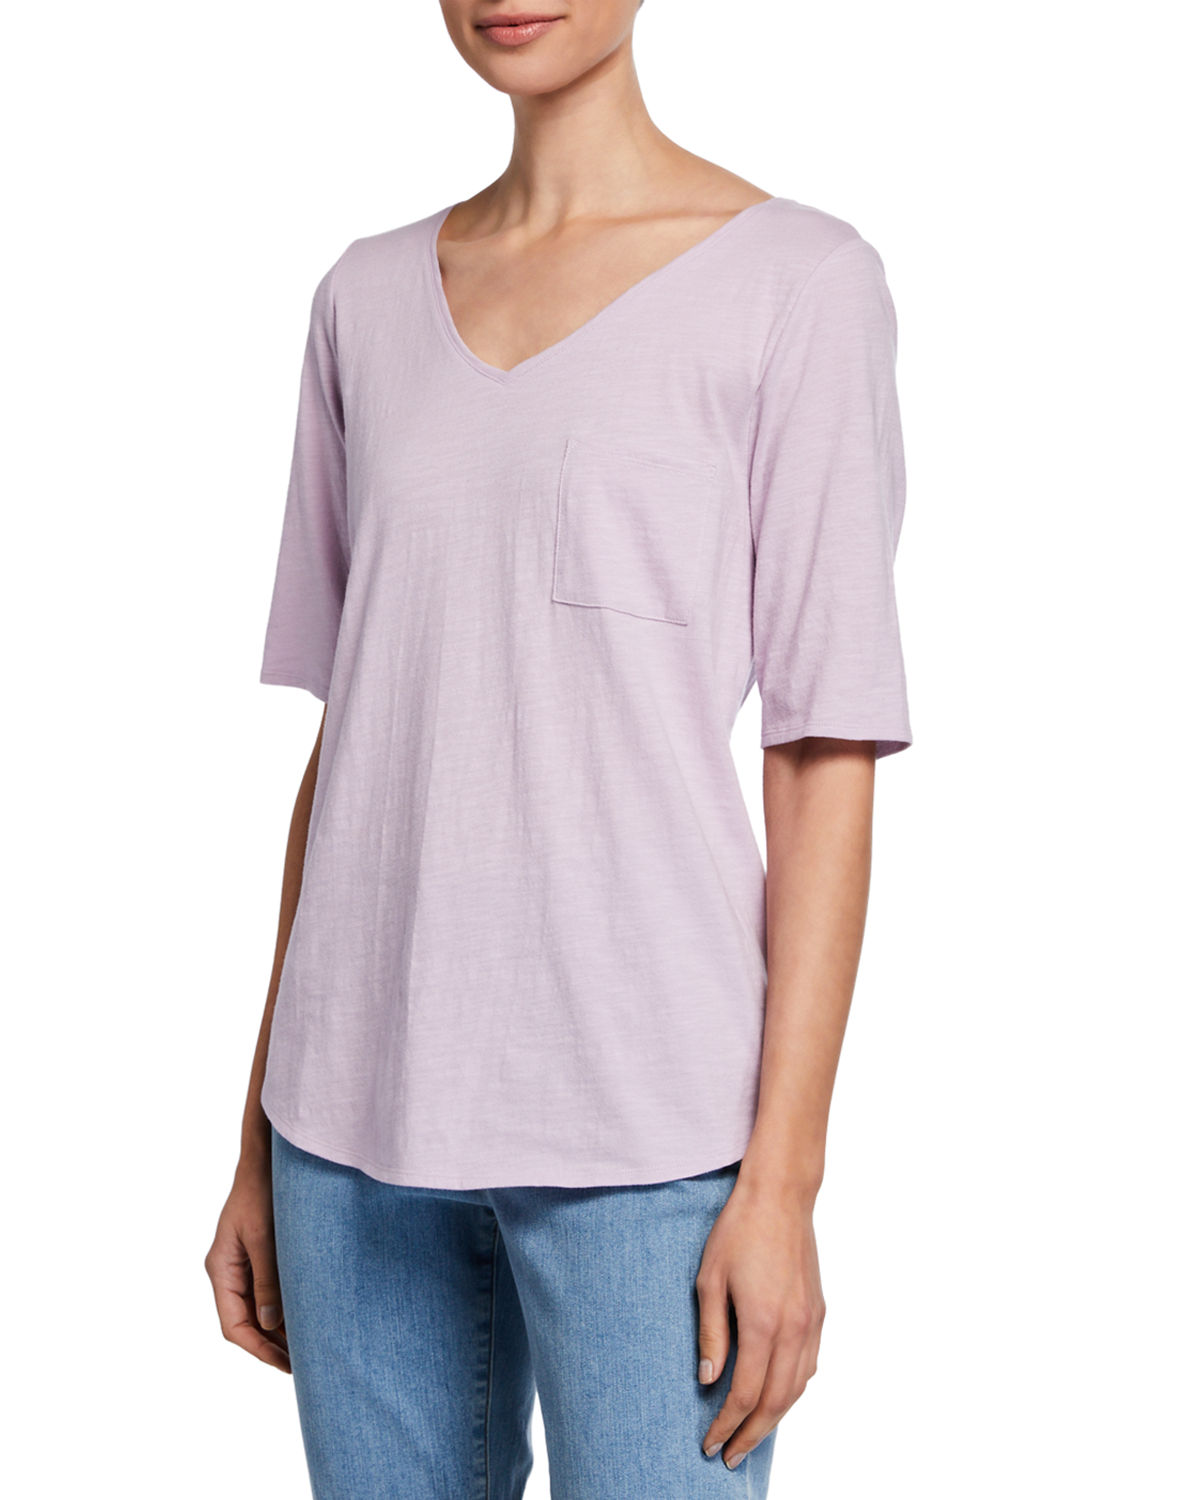 0adaef923d2db Eileen Fisher Plus Size Organic Cotton V-Neck Elbow-Sleeve Slub Jersey Tee  In